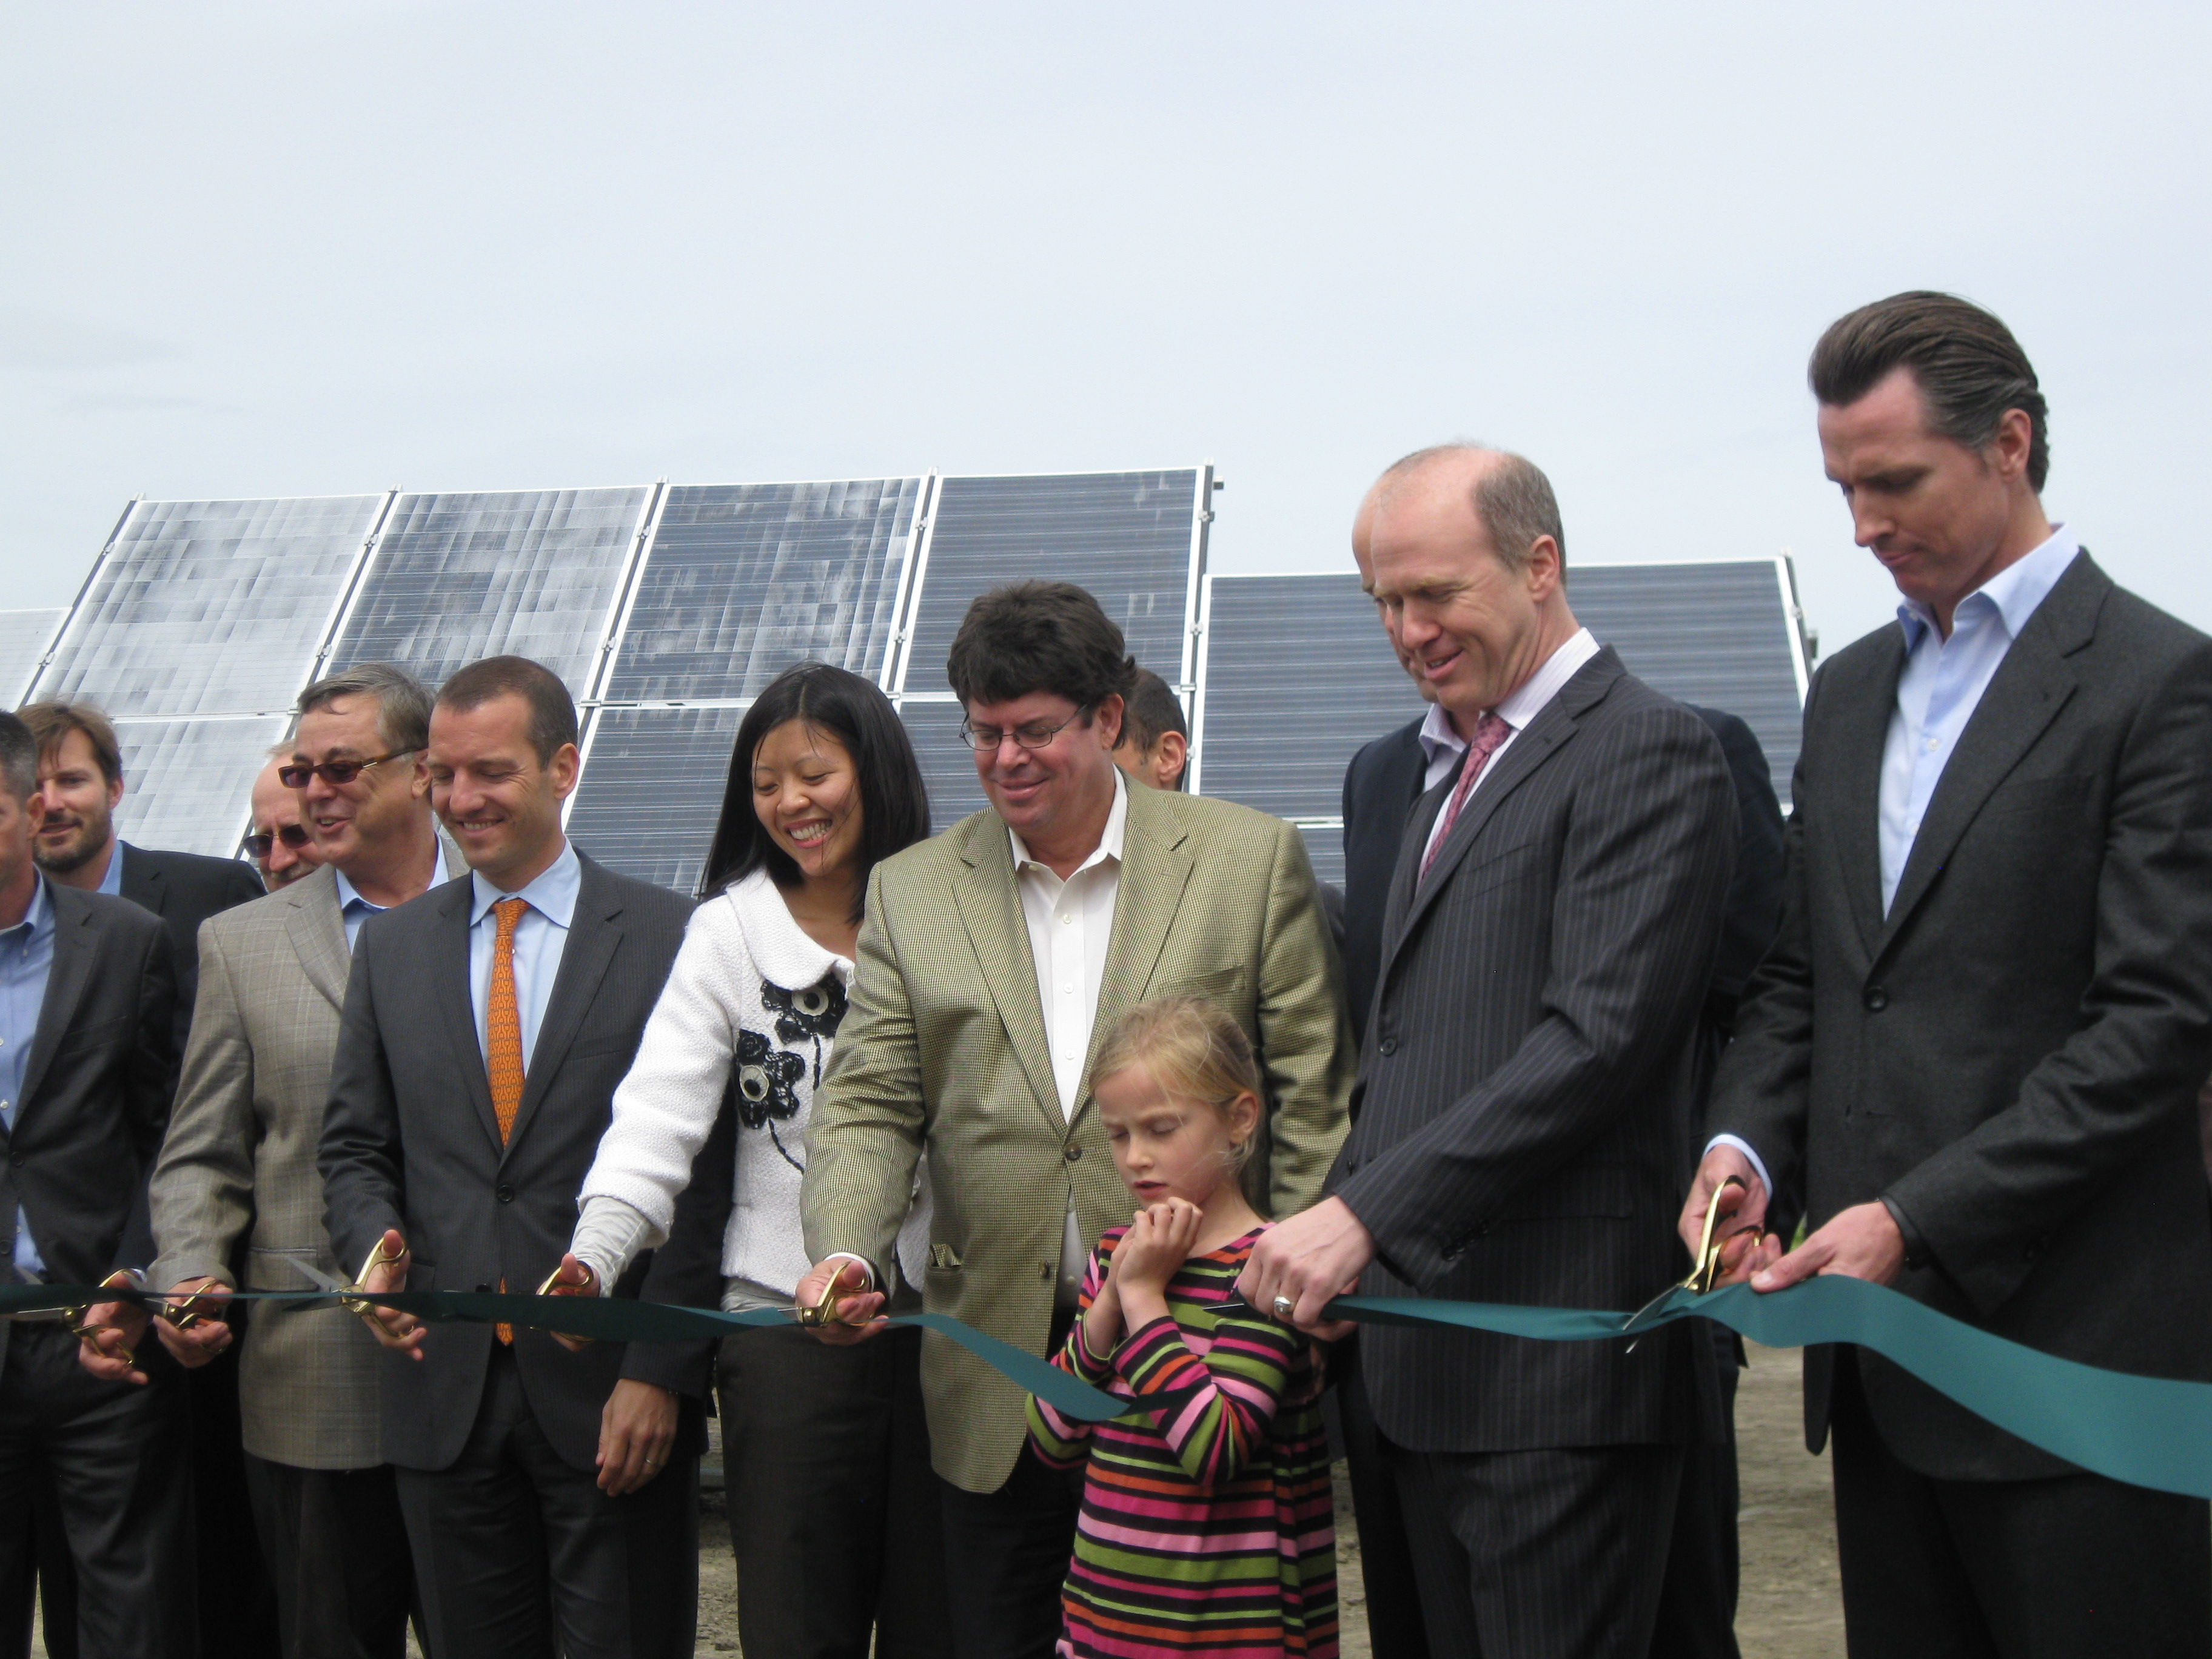 Ribbon cutting in front of the solar array